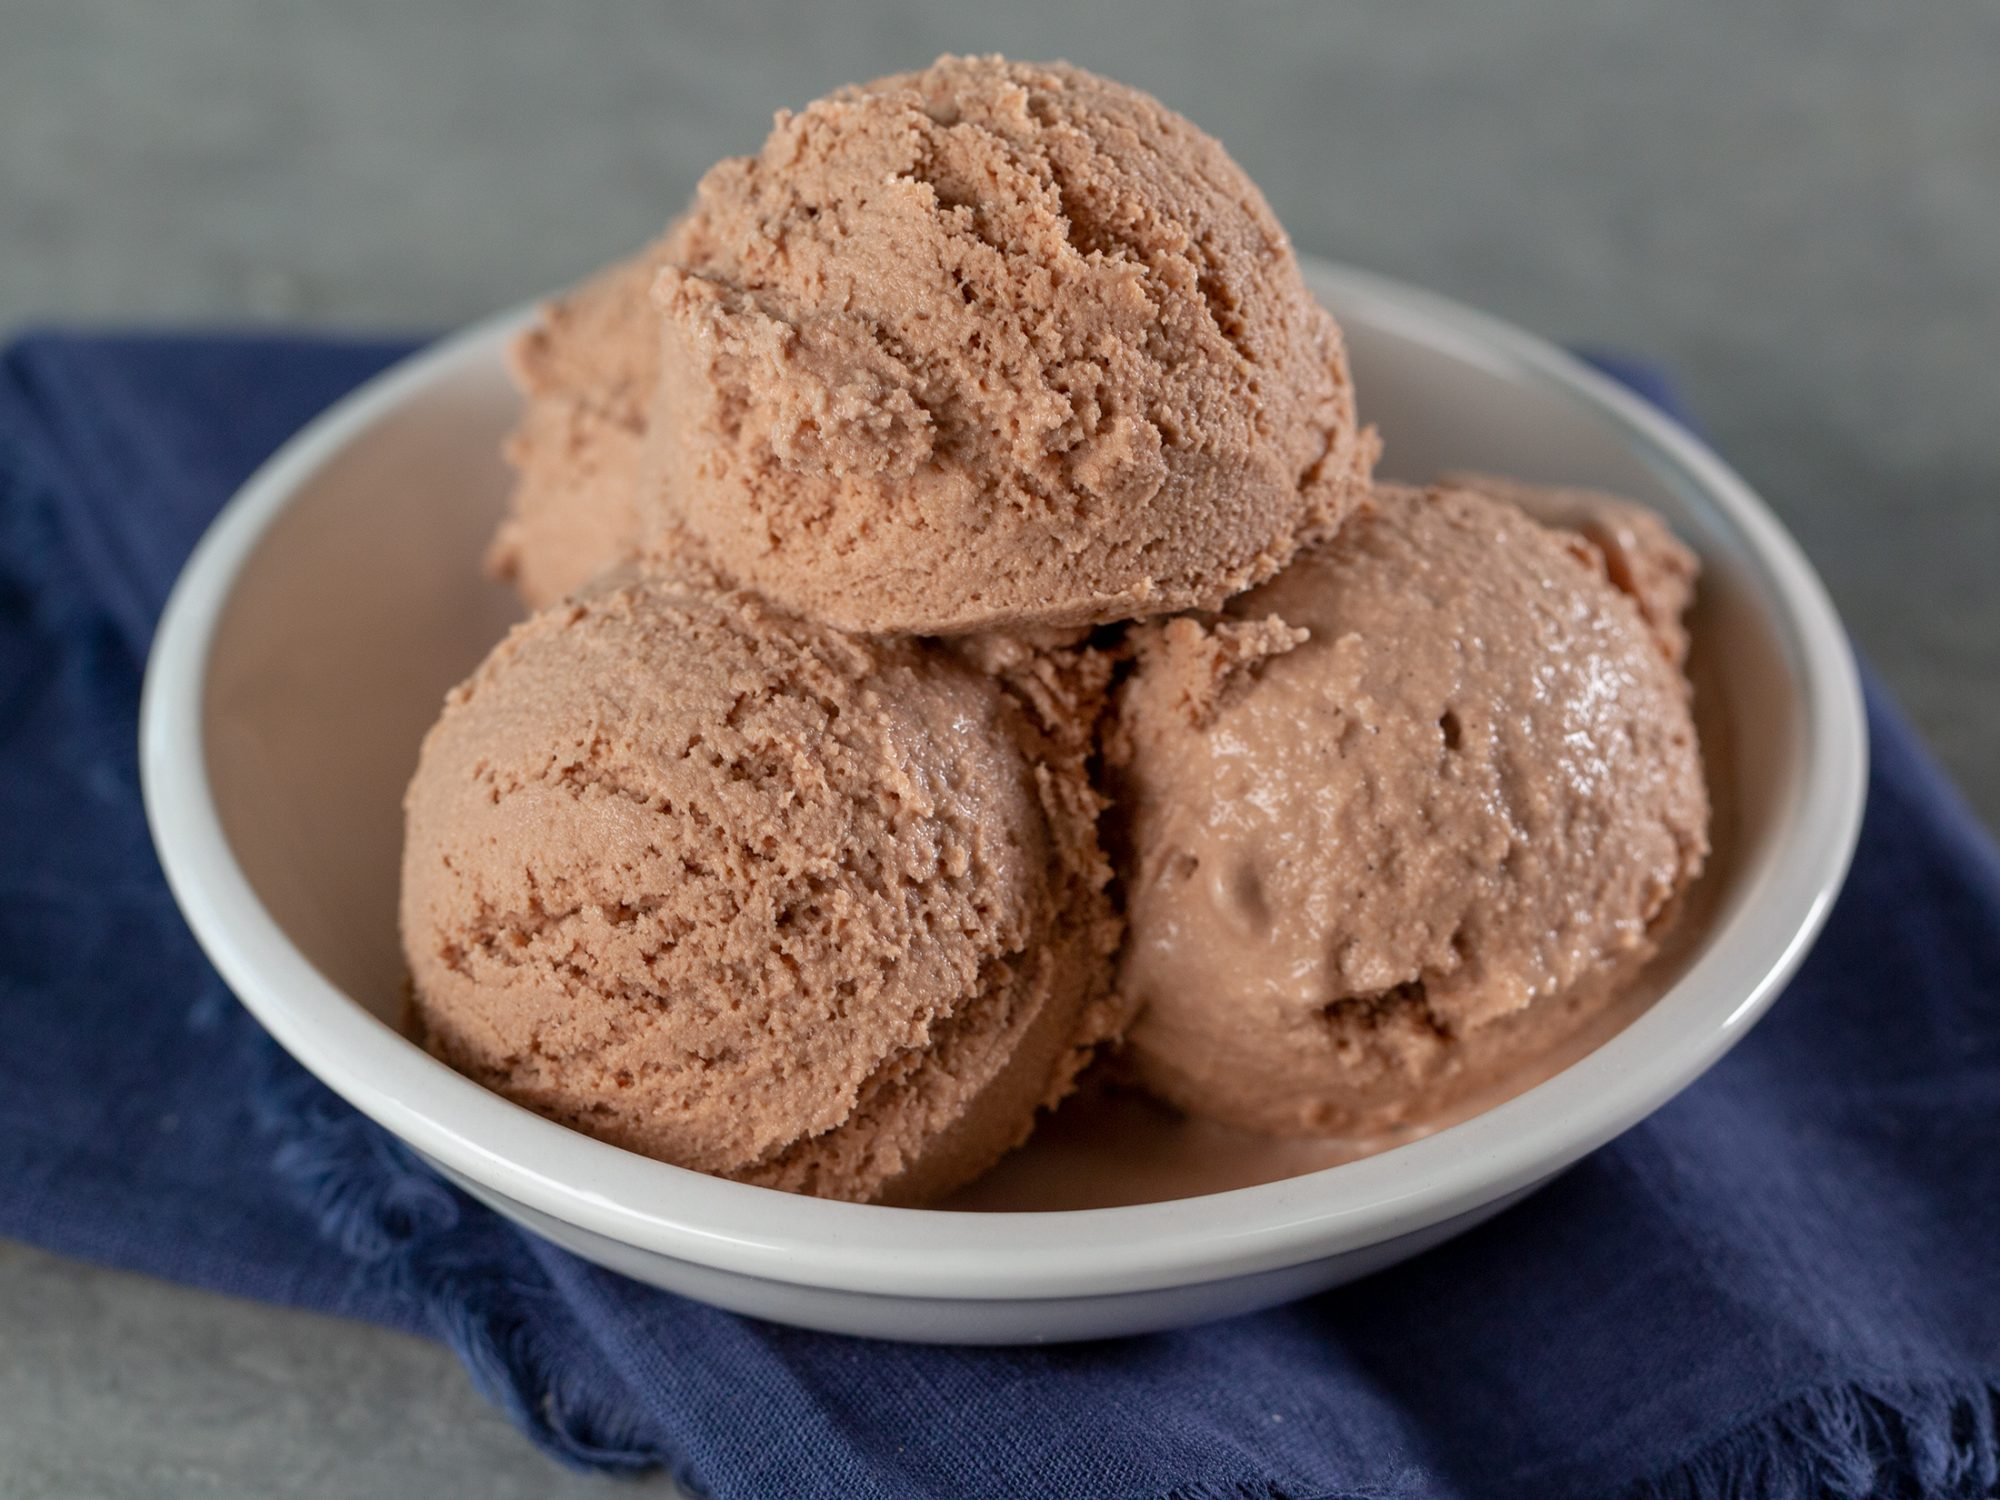 Keto Chocolate Ice Cream image